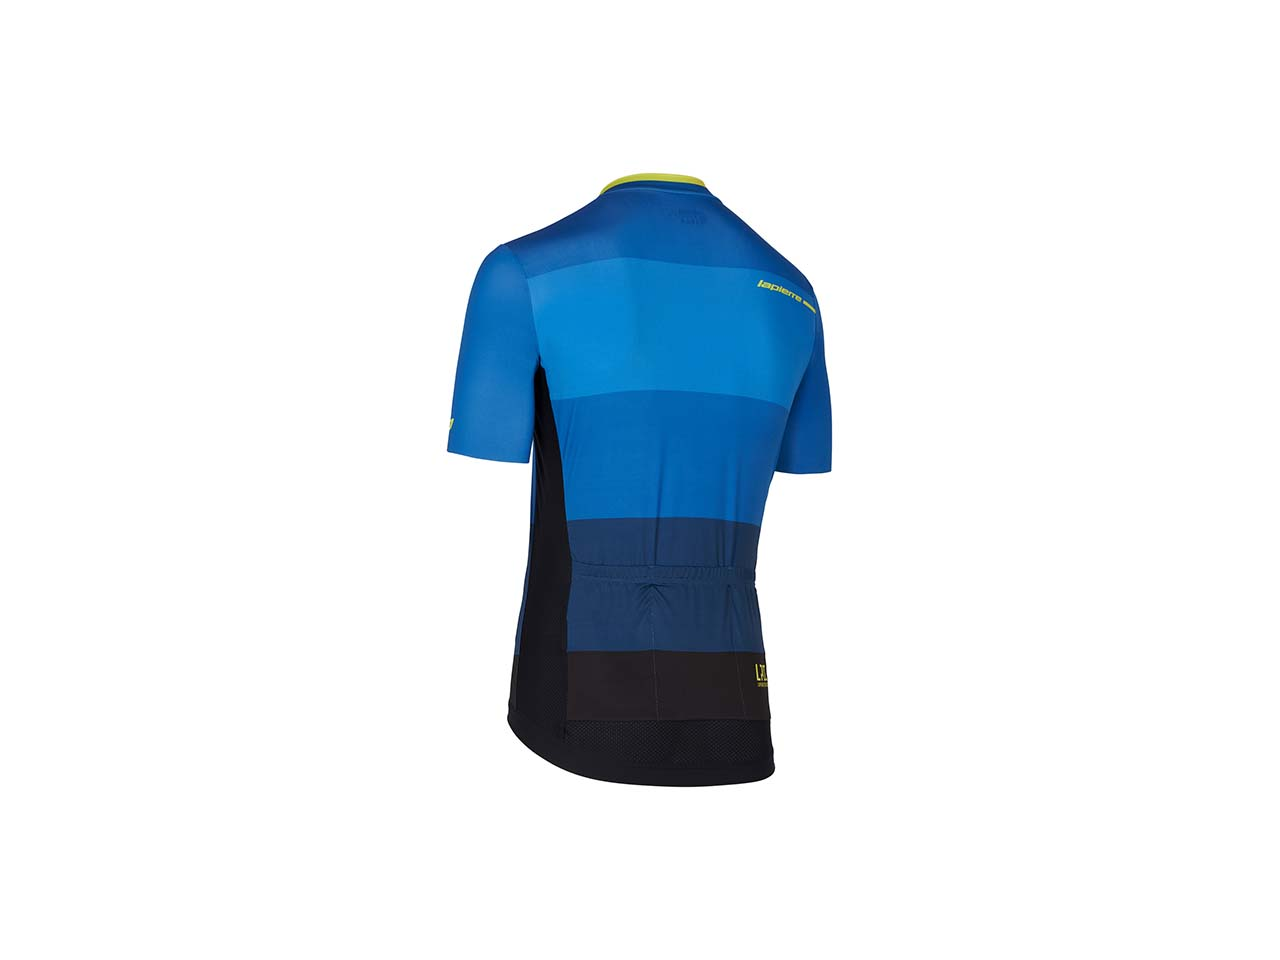 Lapierre men's cycling jersey Superlight Petrol Lime - back